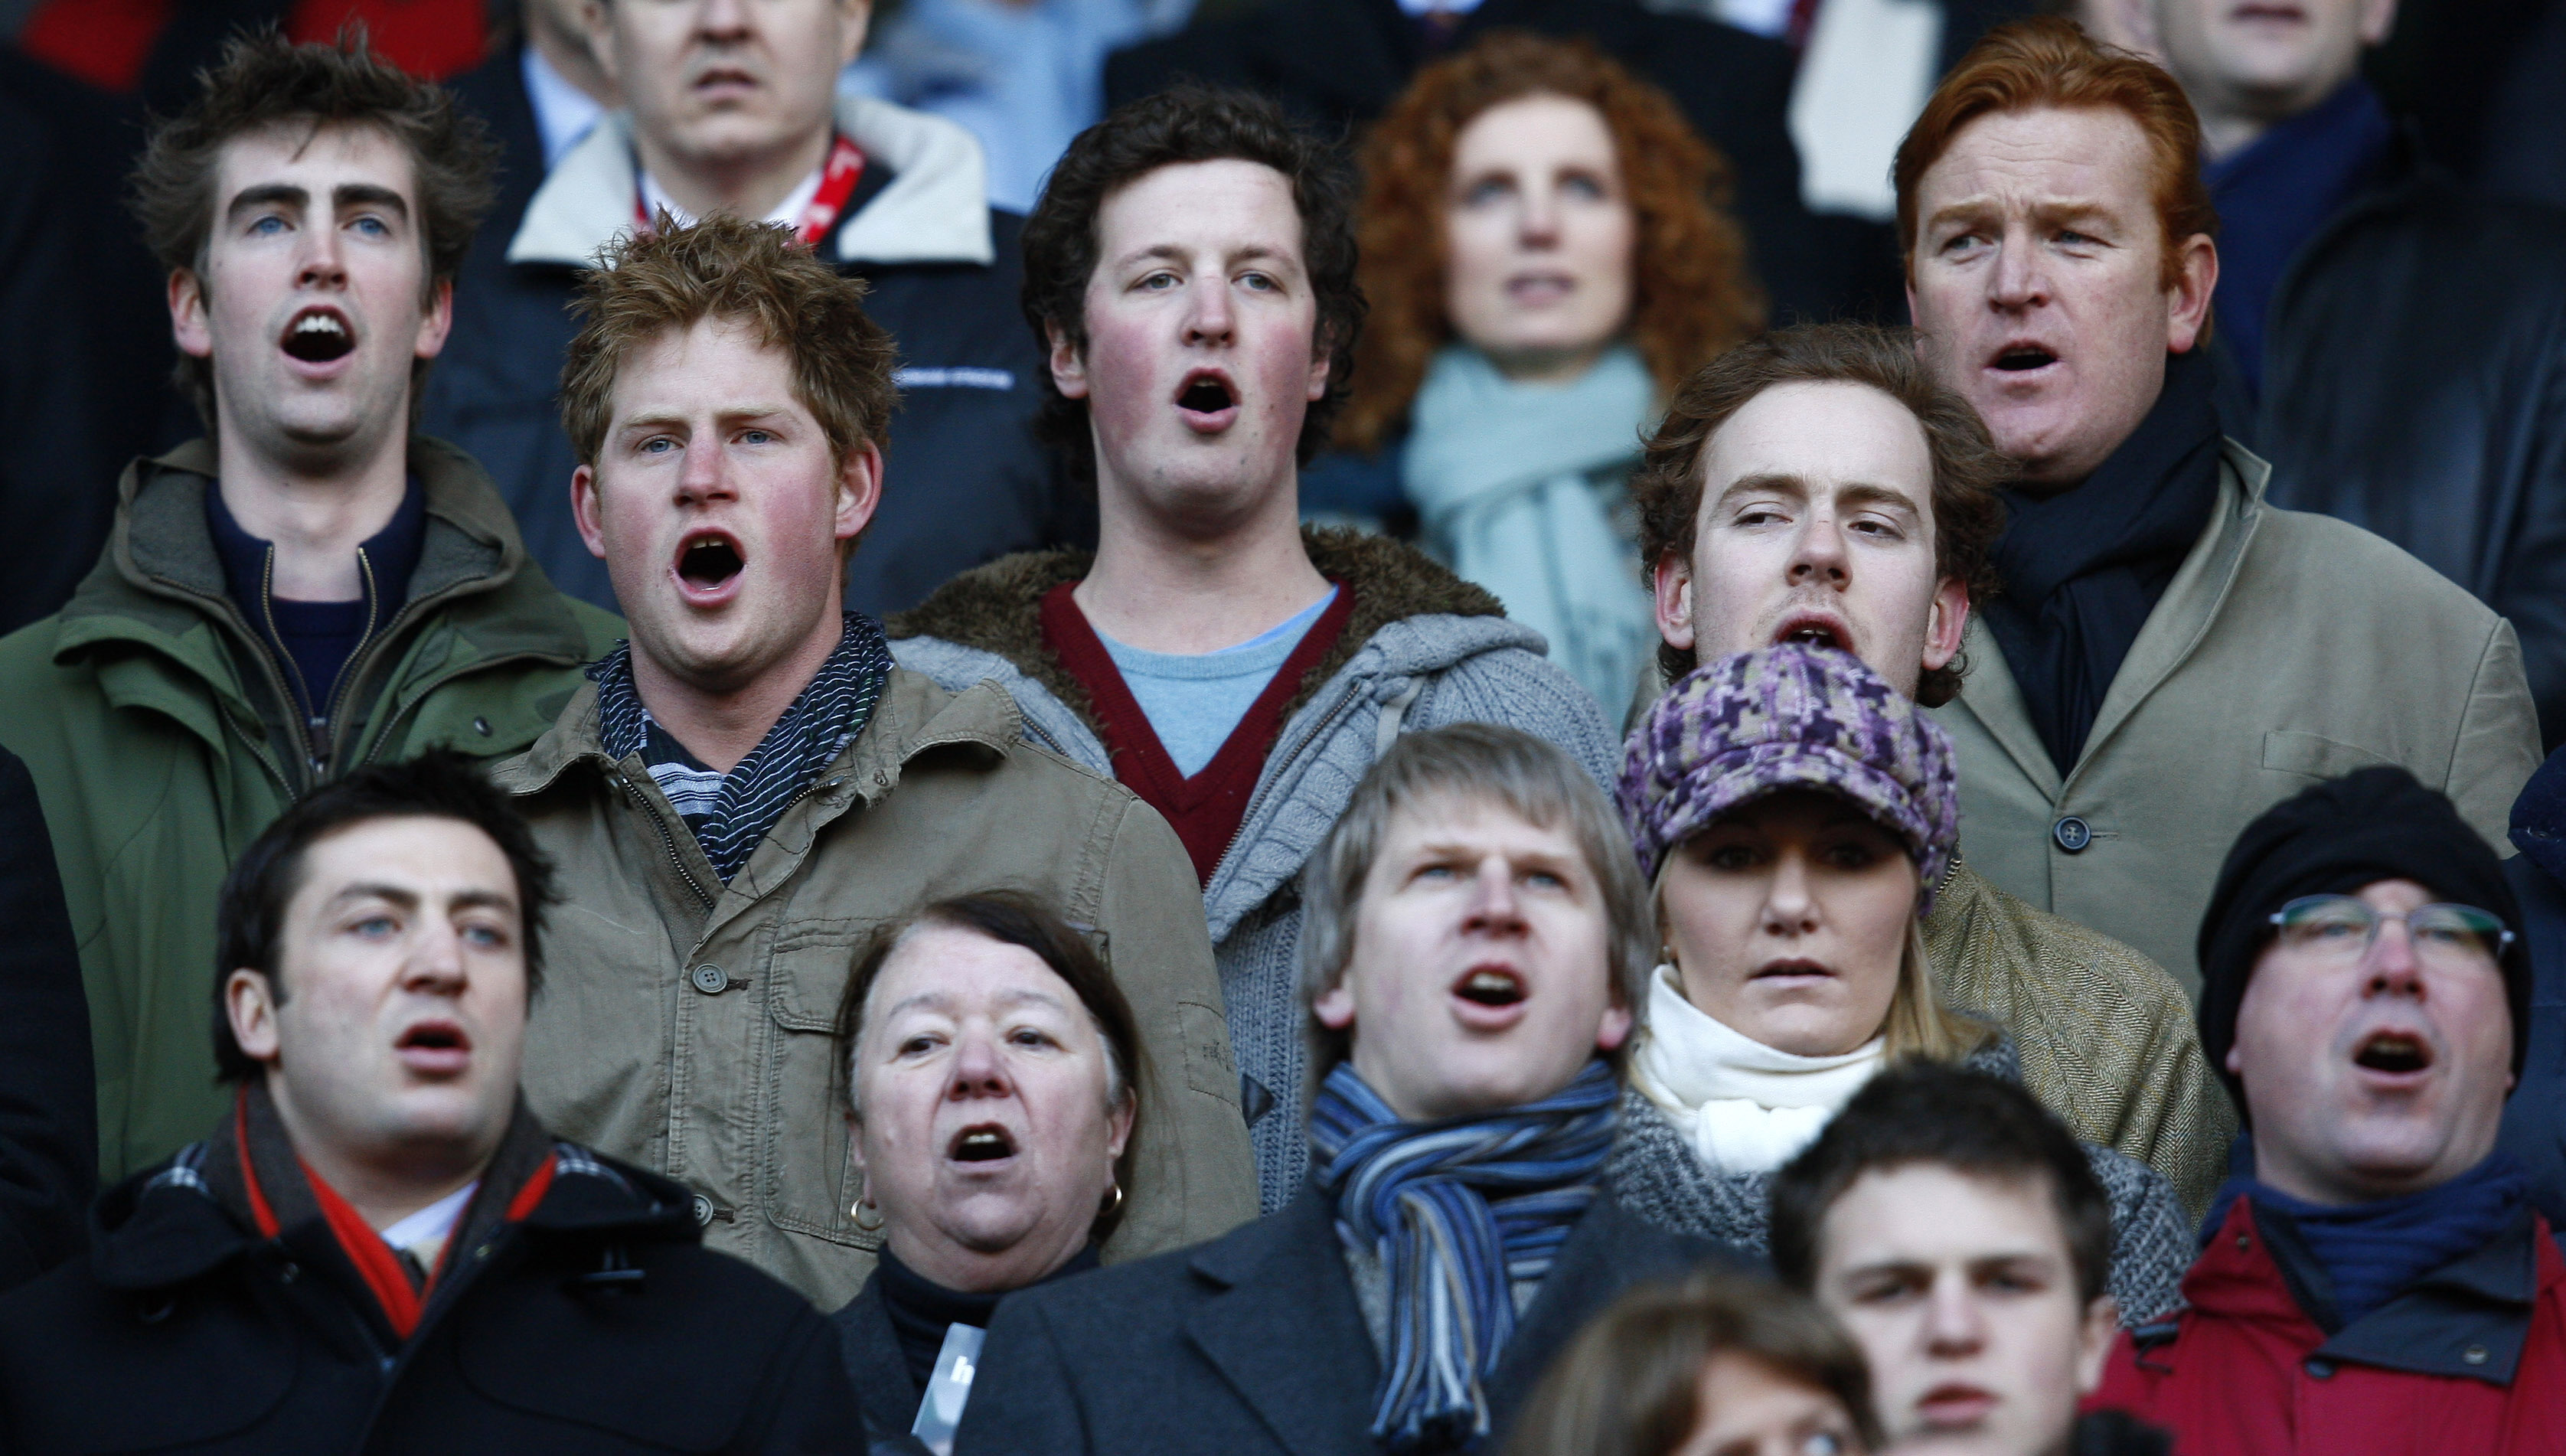 Britain's Prince Harry sings the national anthem before the Six Nations rugby match between England and Italy at Twickenham in London on Feb. 7, 2009.